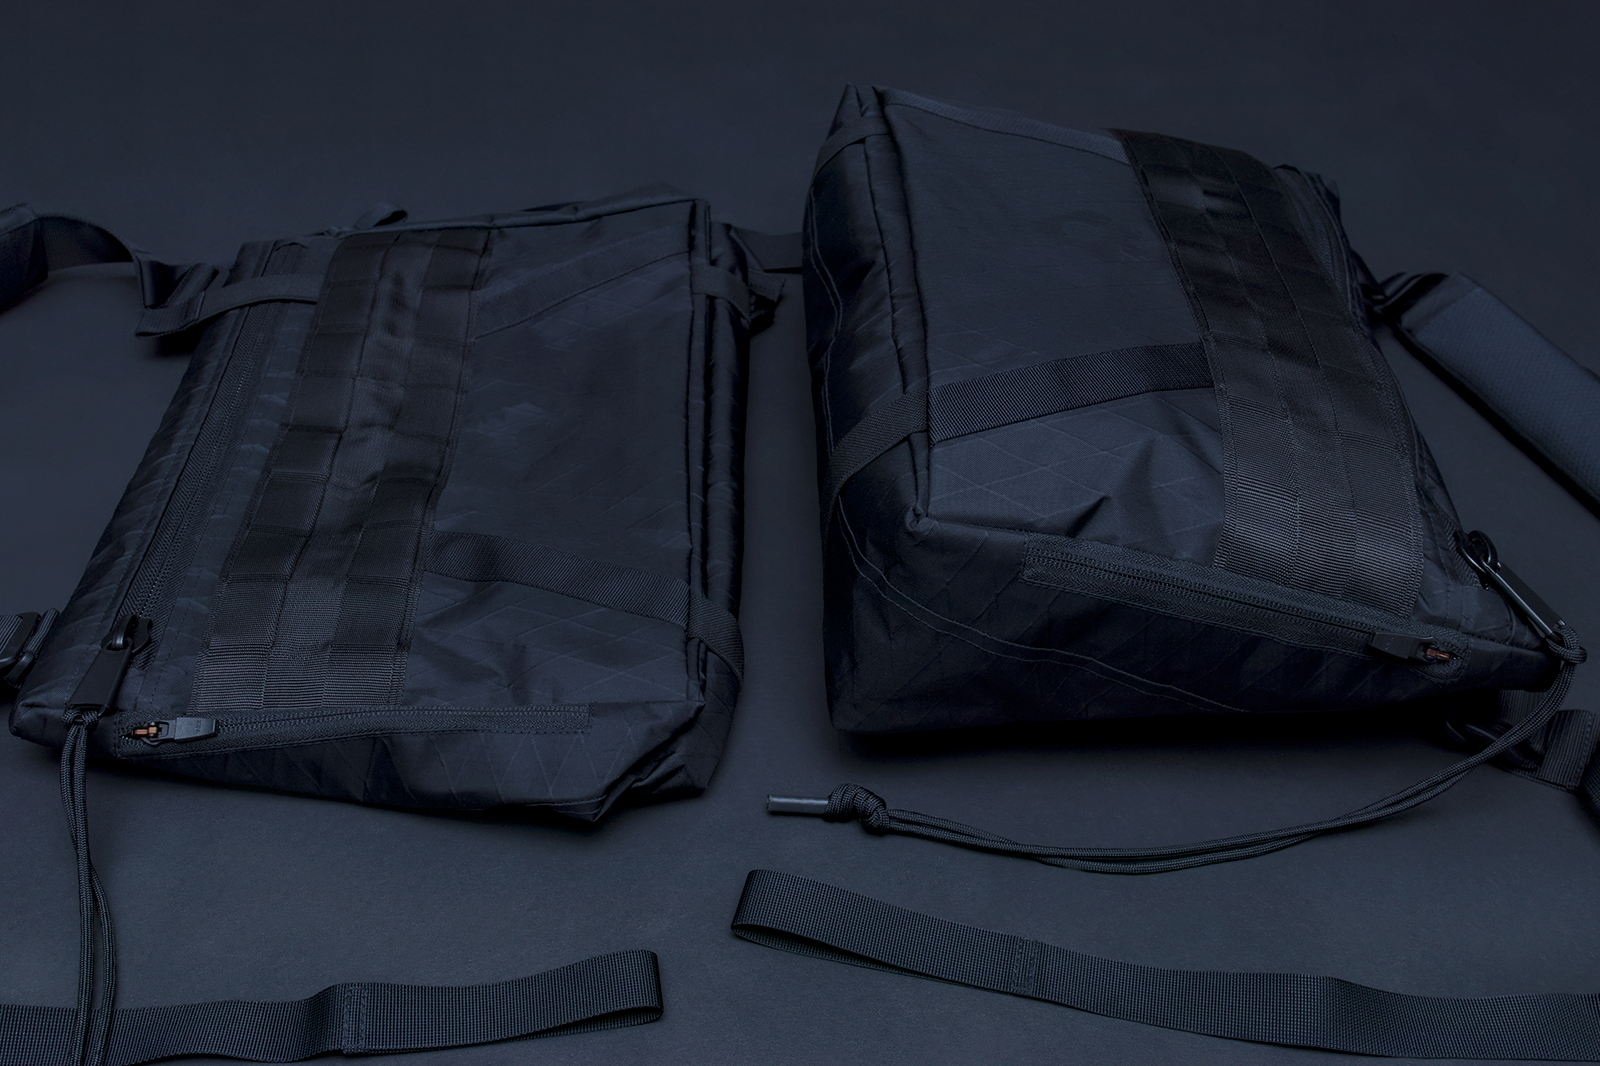 LEFT: COMPRESSED BAG ––––––––––––– RIGHT: FULLY EXPANDED BAG